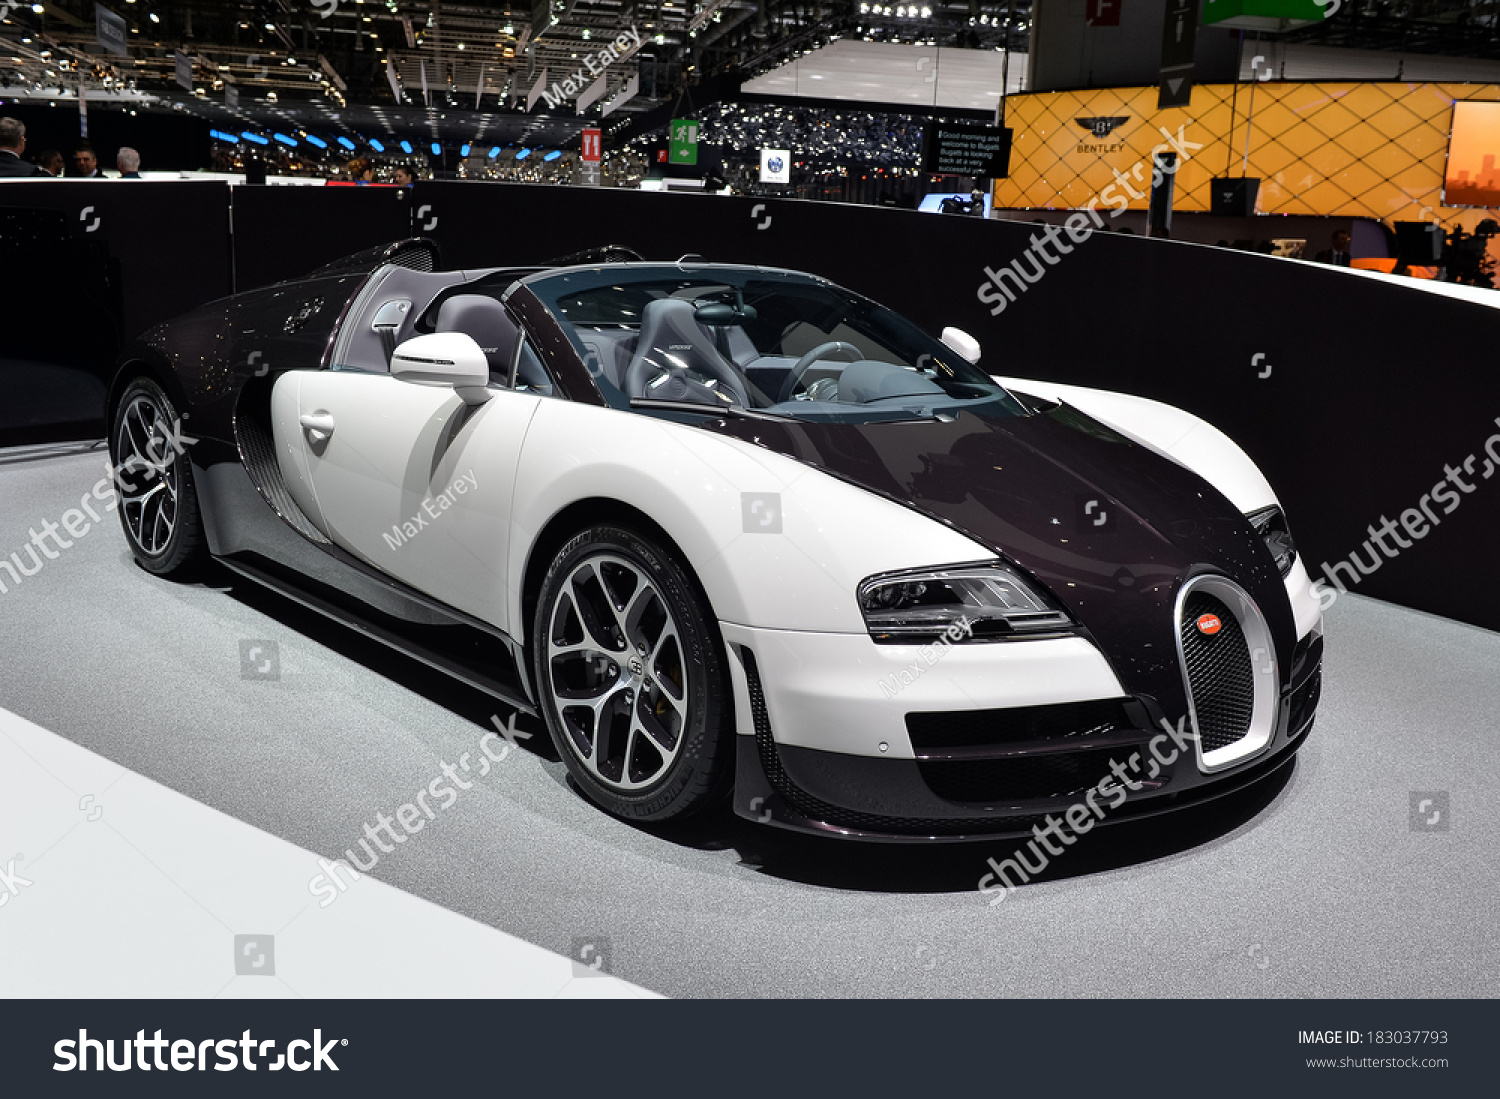 geneva mar 4 bugatti veyron displayed at the 84th international motor show international motor. Black Bedroom Furniture Sets. Home Design Ideas